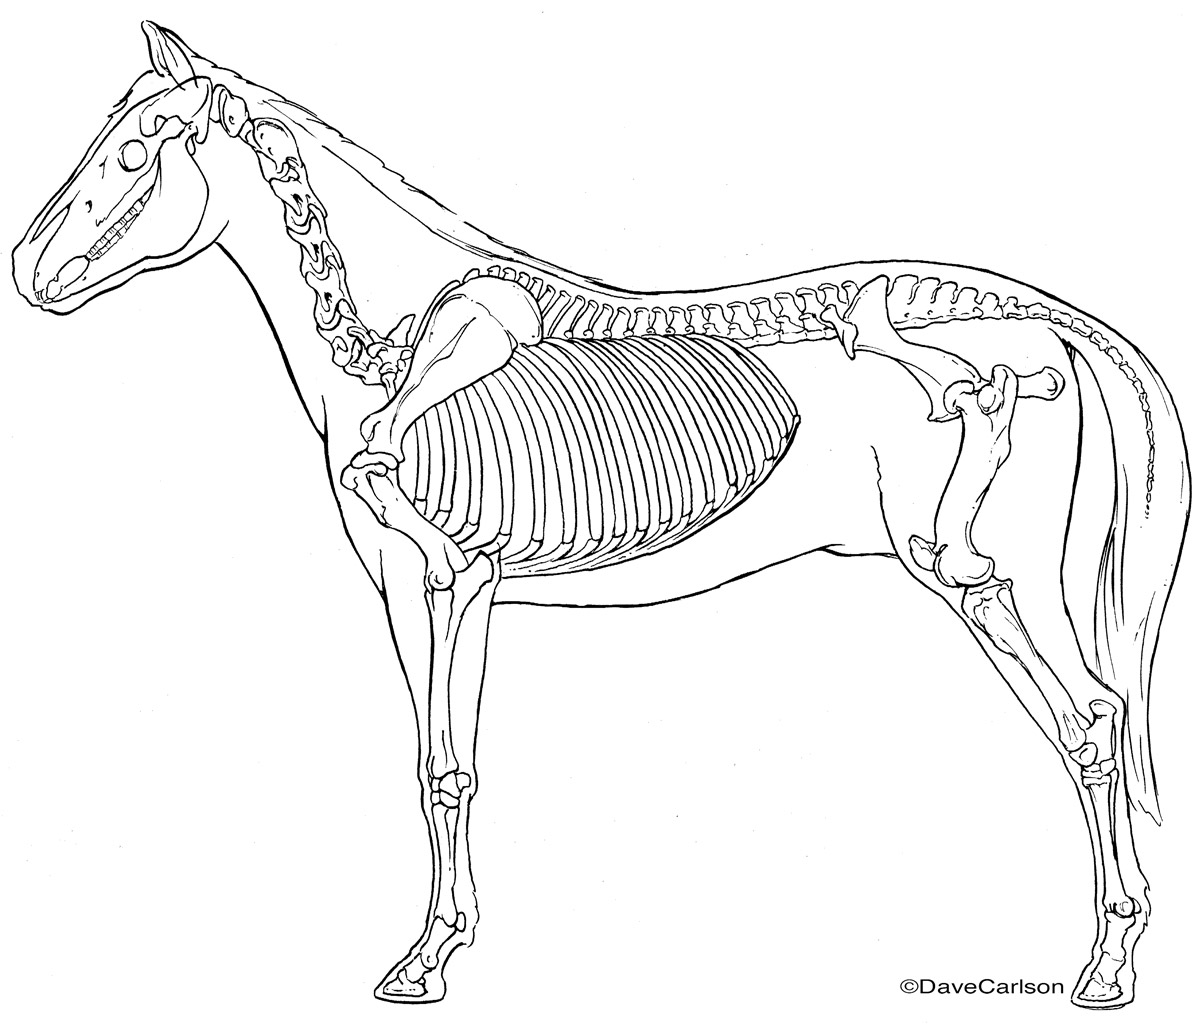 B&W line illustration, lateral view, horse skeleton, photo